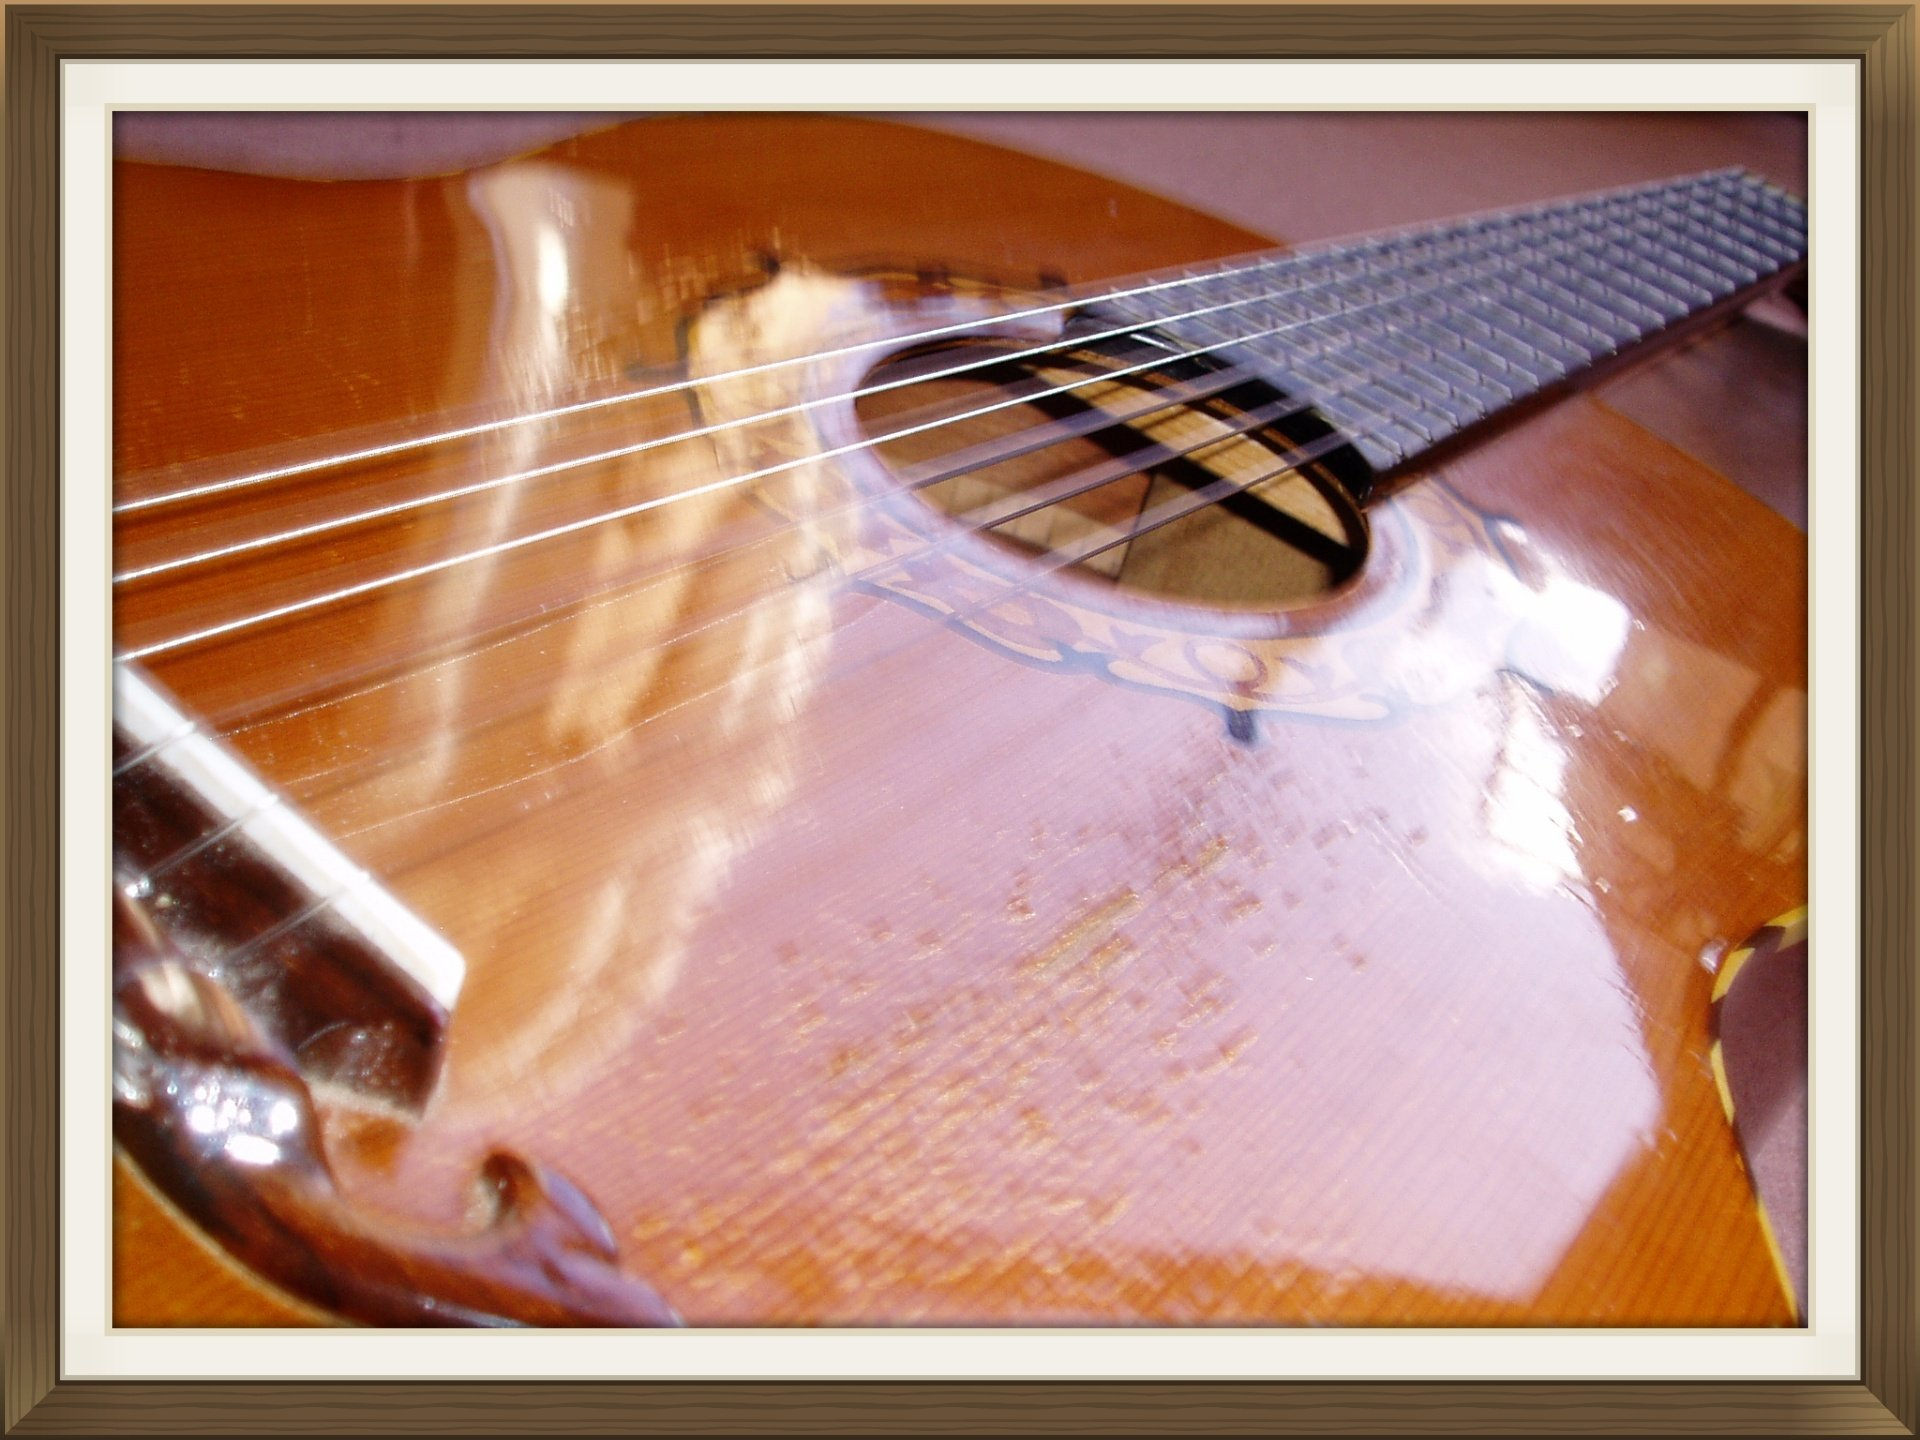 MannofieldMusic Guitar Lessons in Surbiton, Kingston upon Thames, Greater London